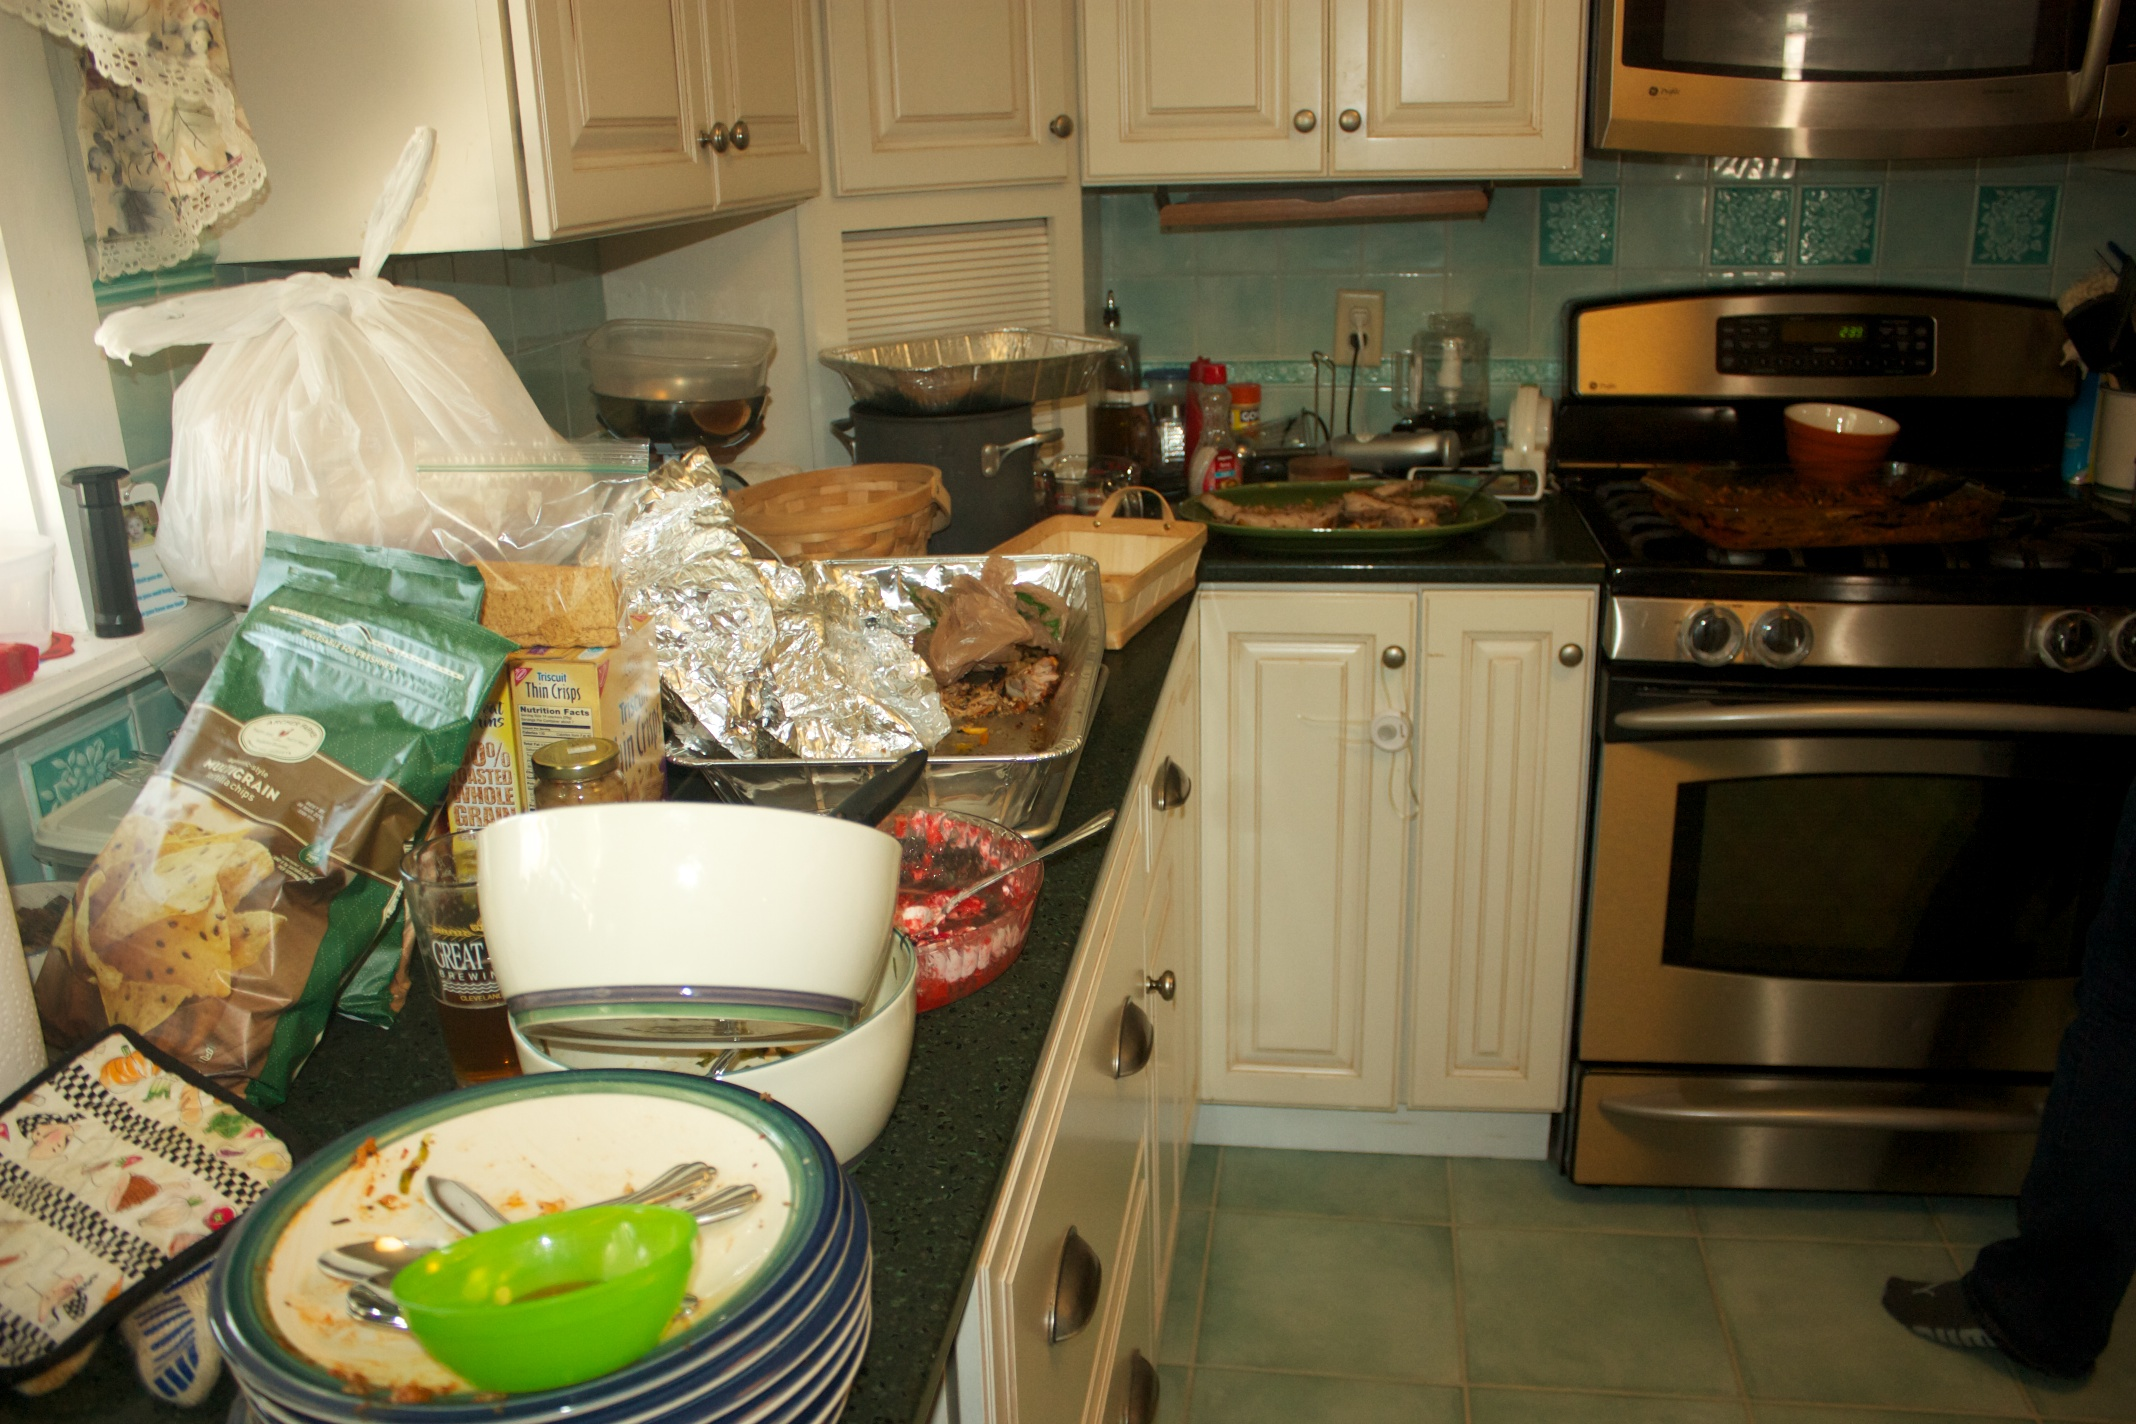 Christmas 2012: Who's going to help me clean up?